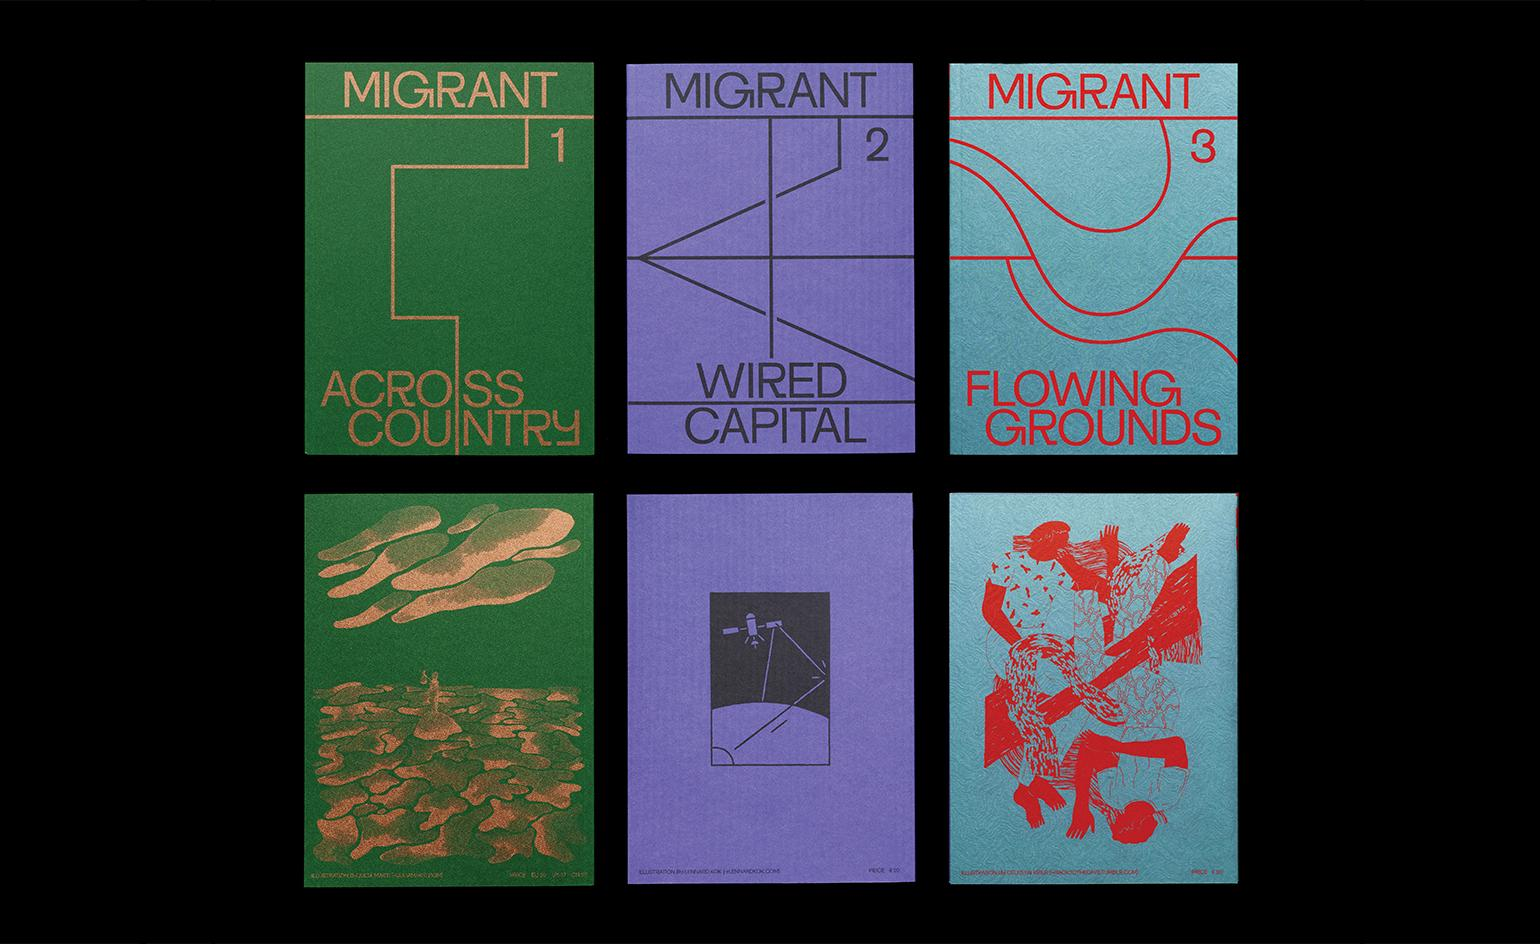 new7-3_migrant-journal_2